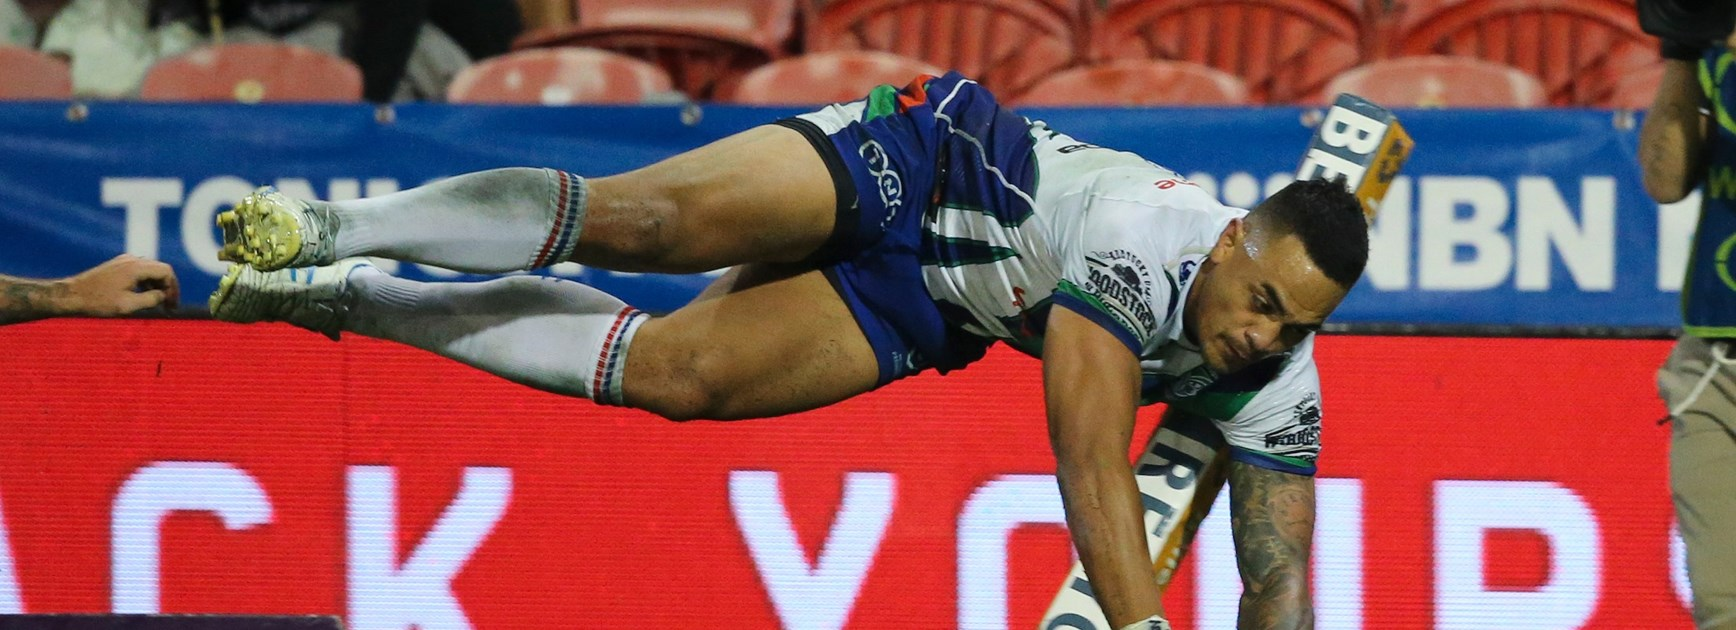 On a wing and some flair: Maumalo flies to top of try-scoring tree